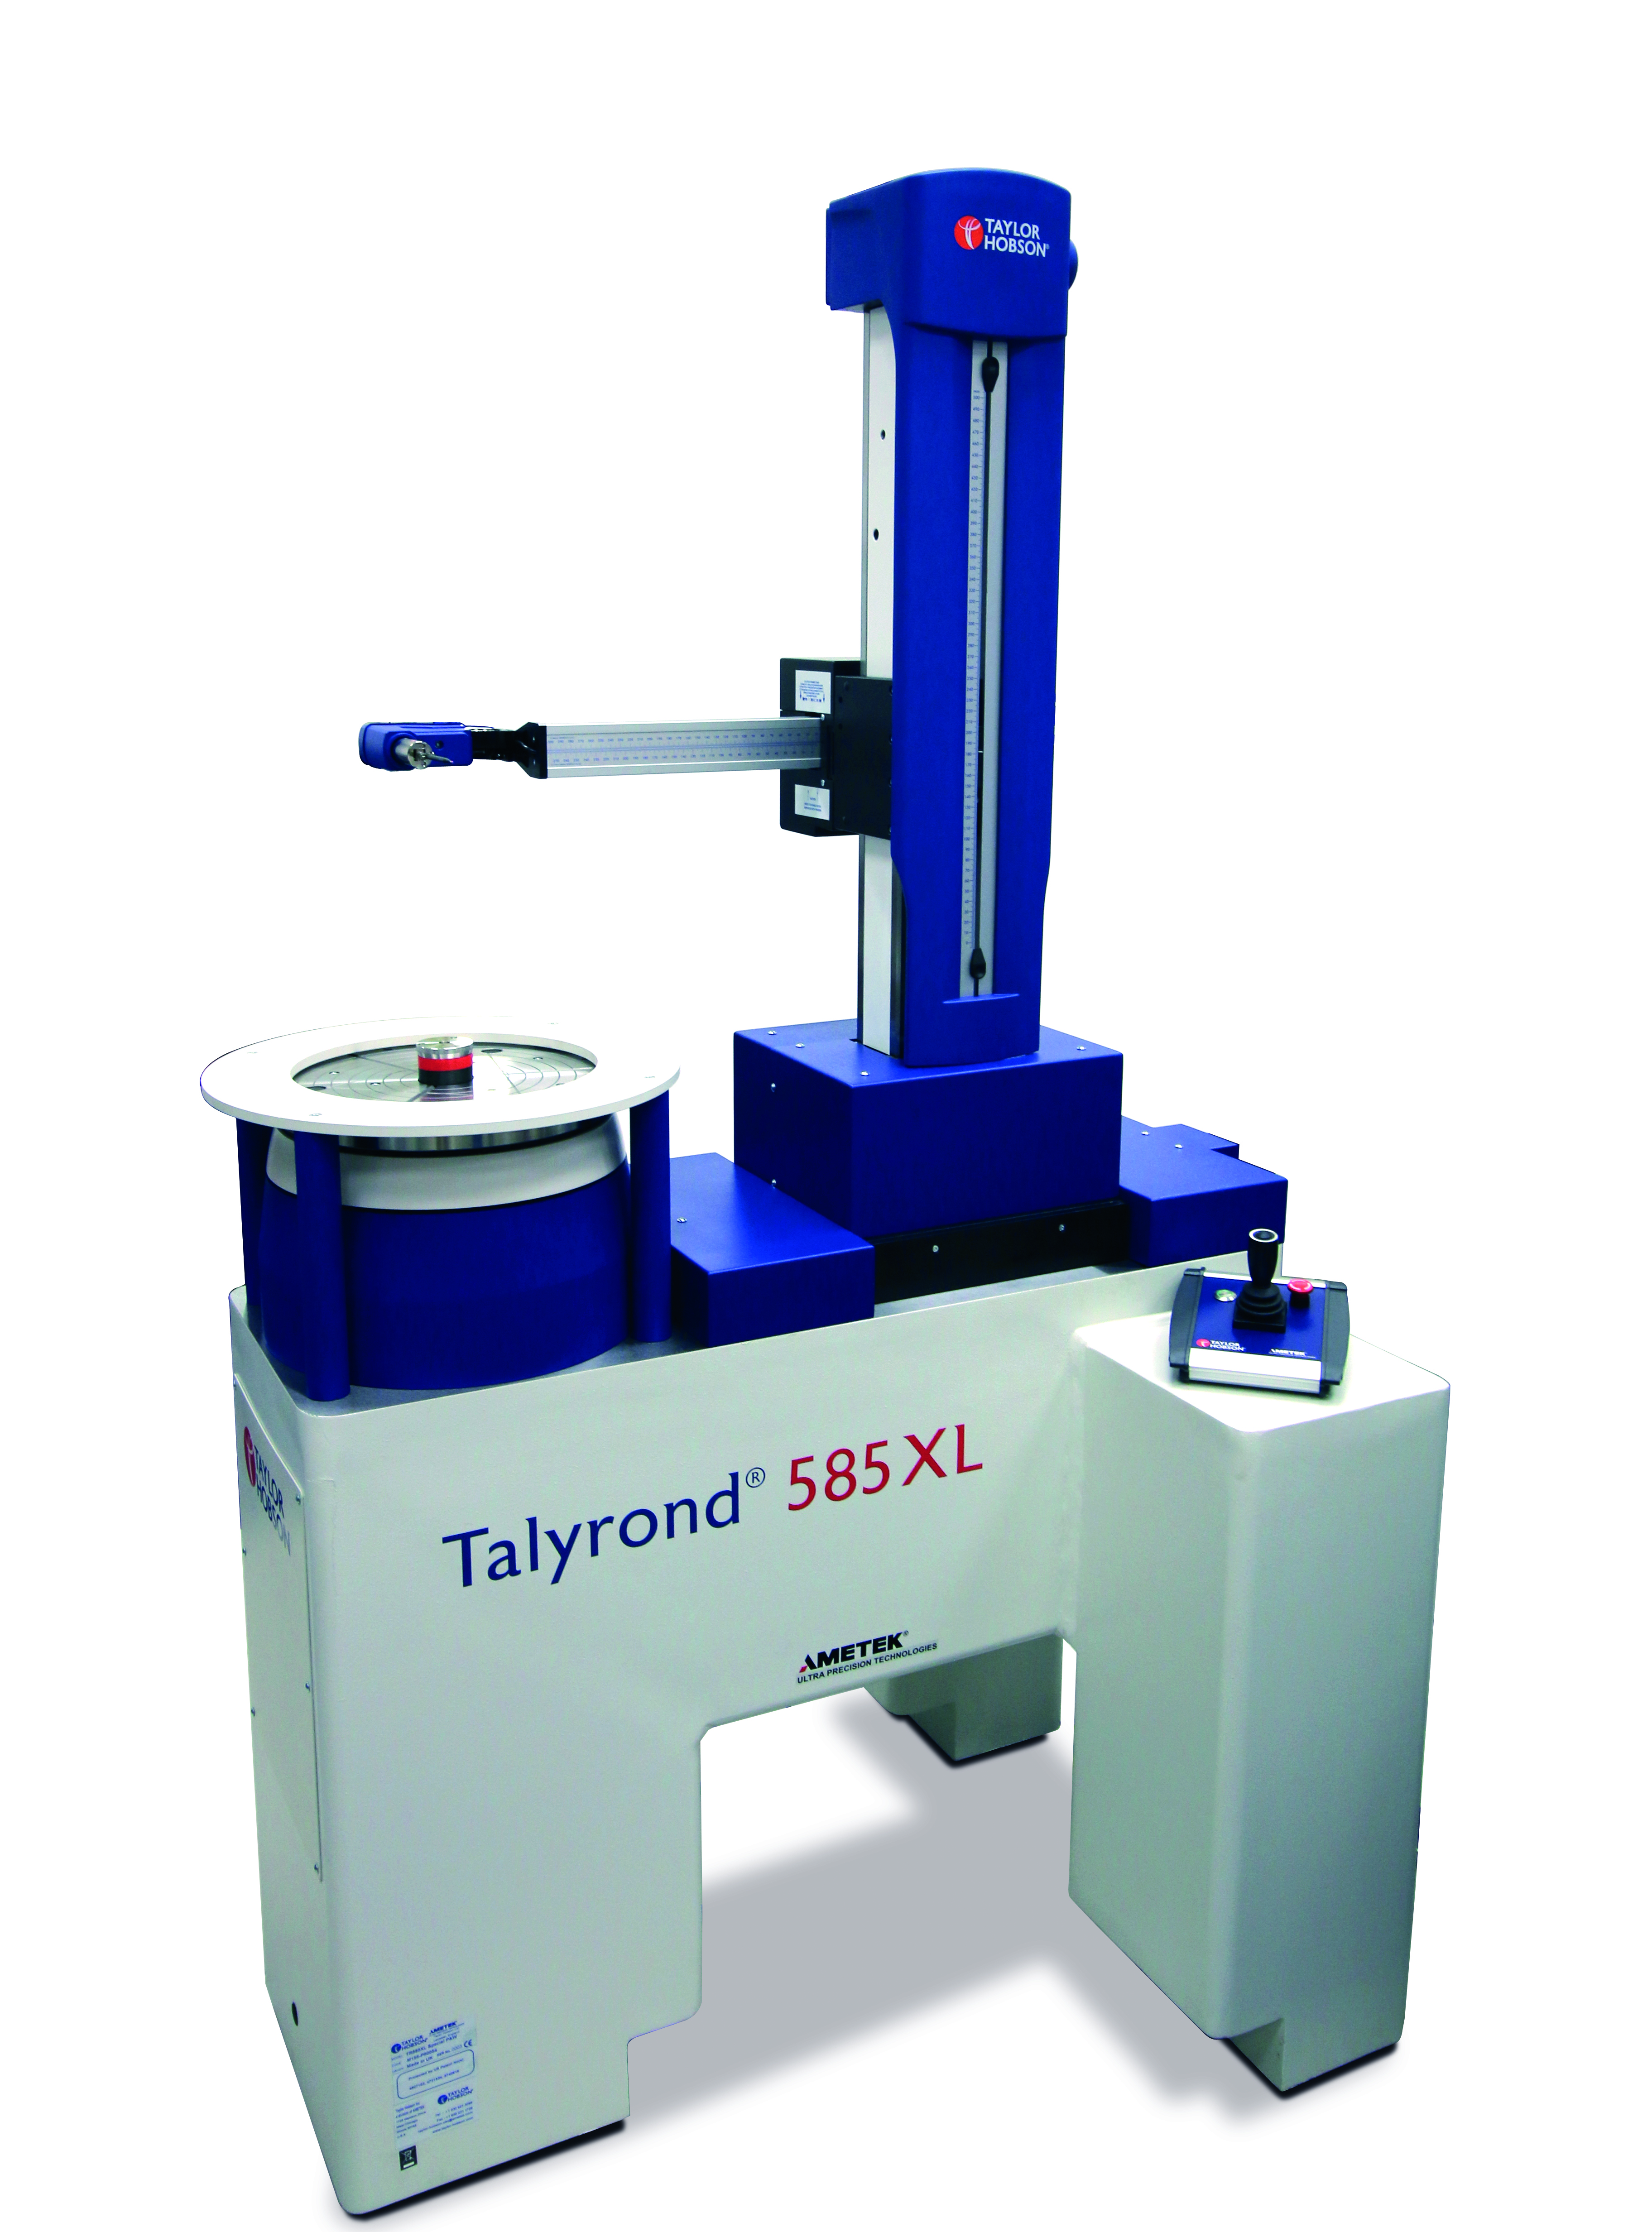 Extremely popular system in the measurement of lage diameter bearings